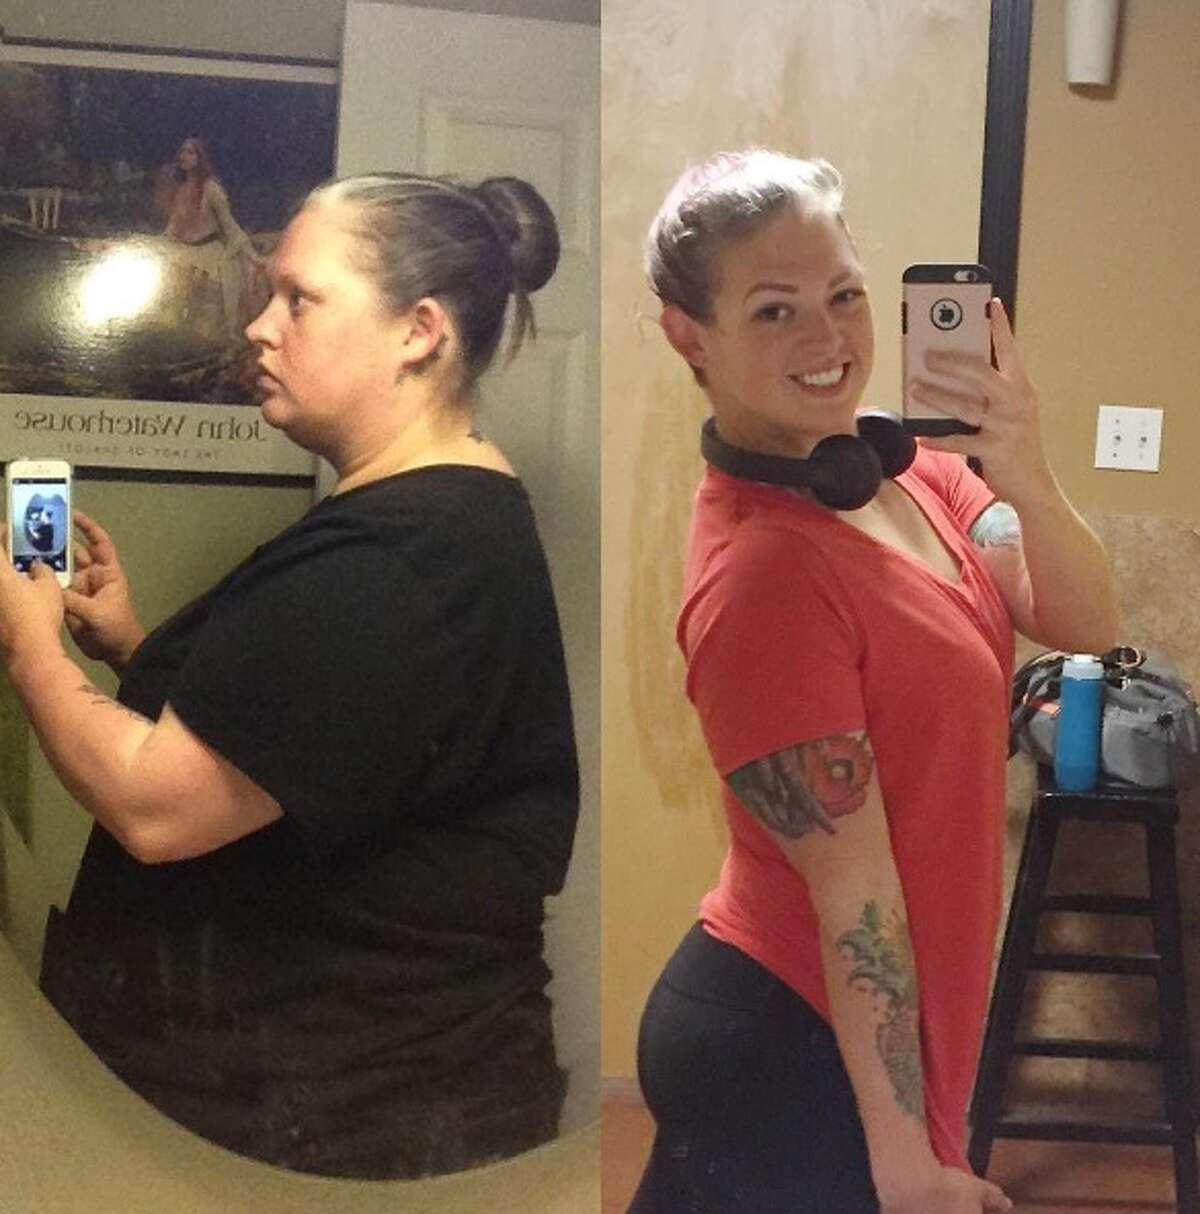 Misty Mitchell, a 36-year-old Wimberley native, has spent the last 20 months chiseling her goal body -- from 296 pounds to 137 -- without pills or products. Health or weight was never an issue in Mitchell's life until family matters slowed her down.